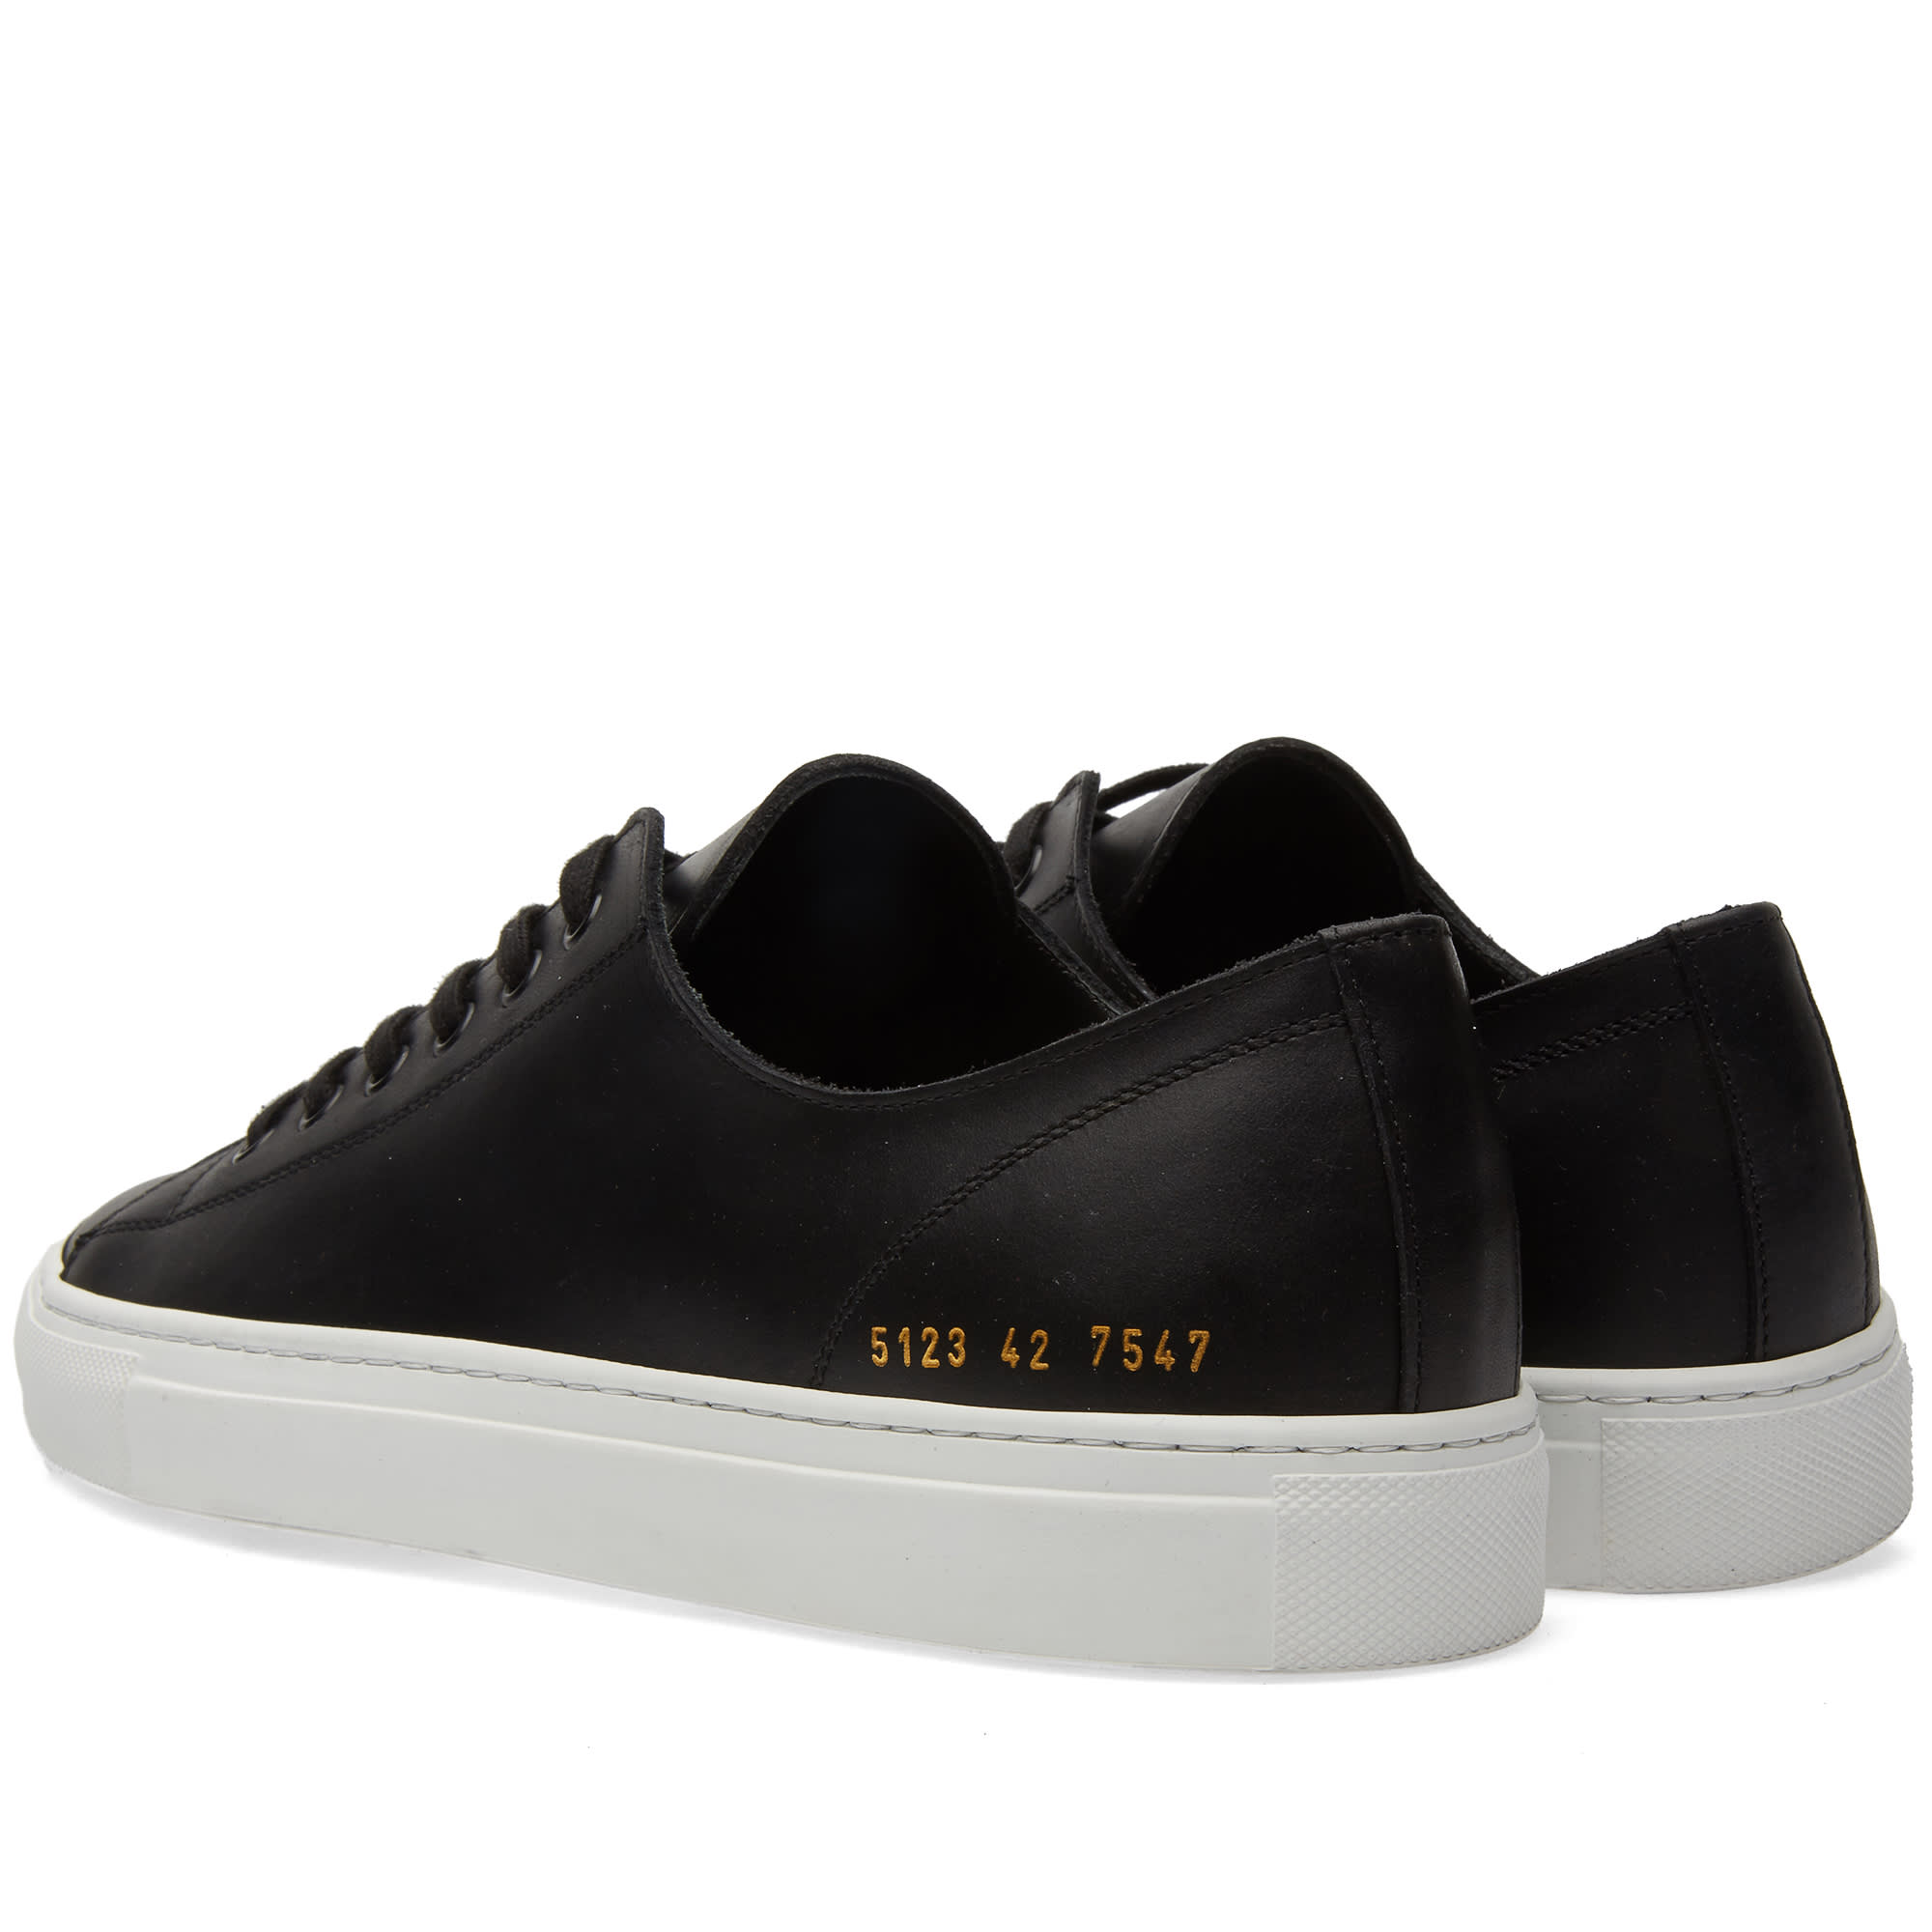 common projects tournament low leather black. Black Bedroom Furniture Sets. Home Design Ideas